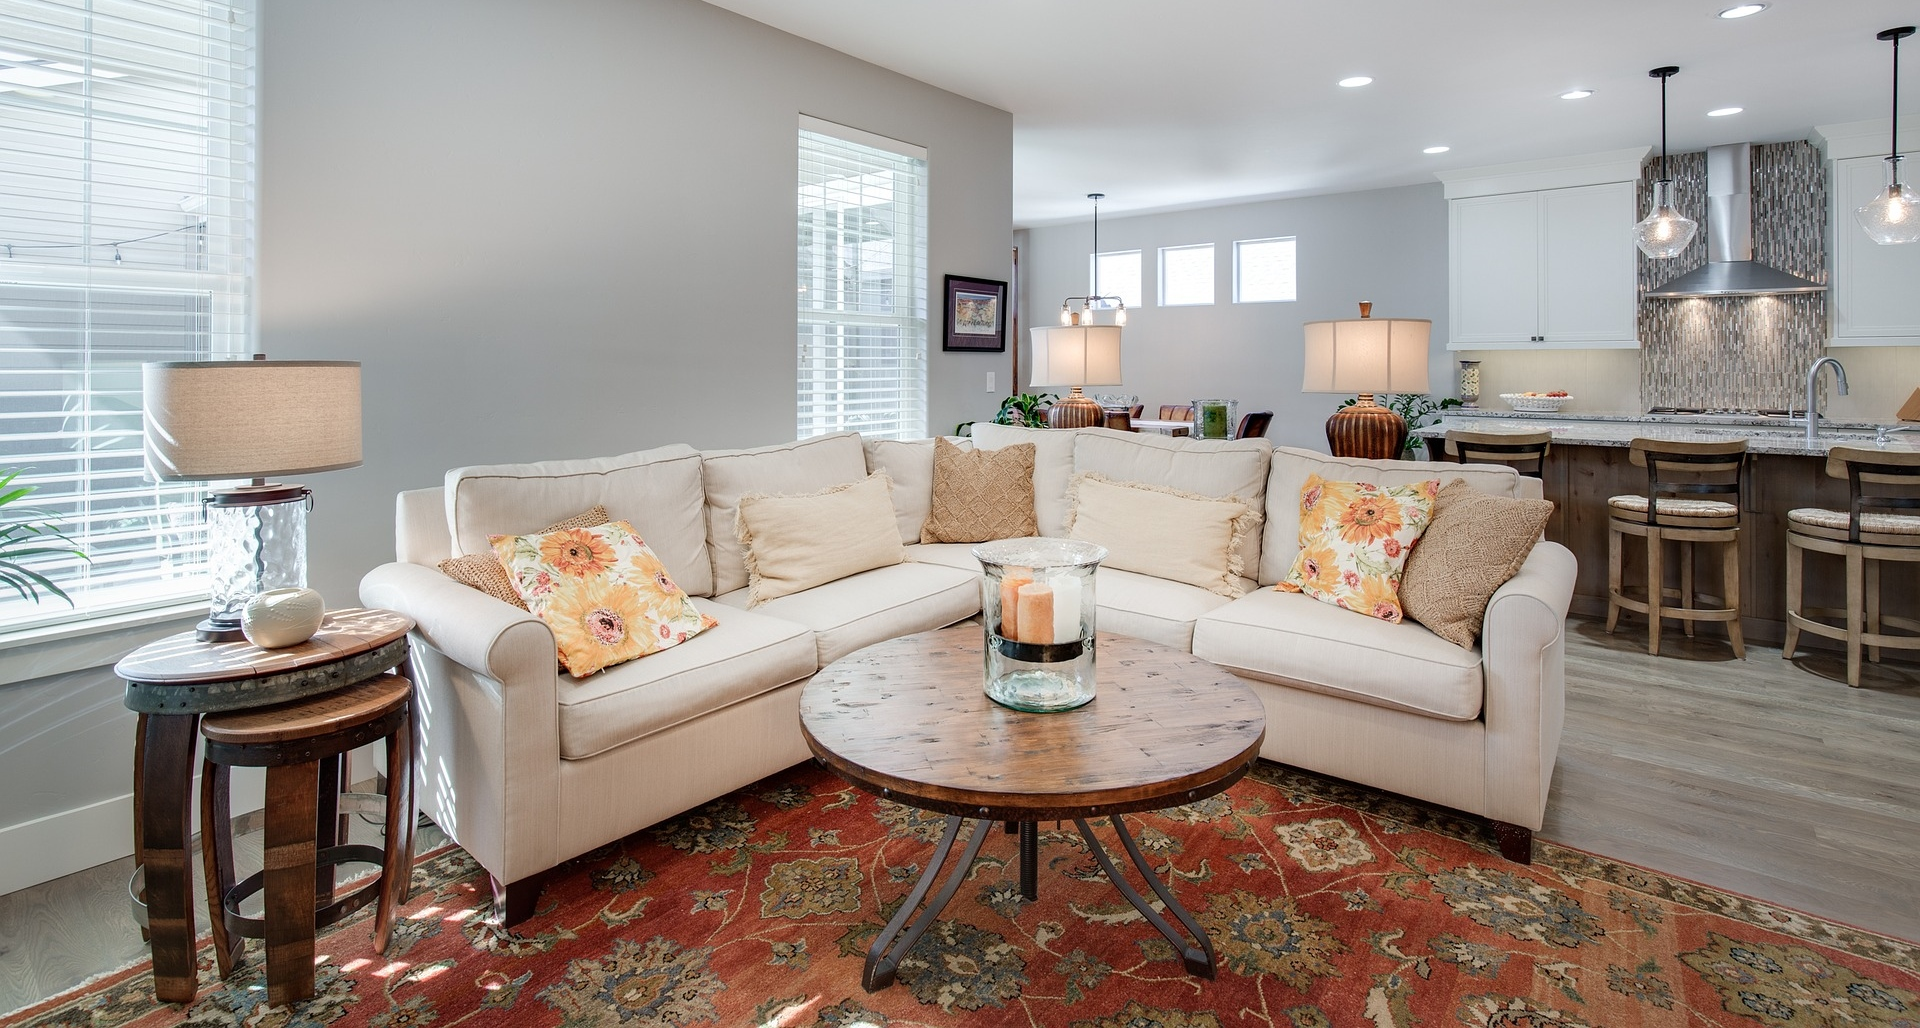 There Is A Difference Between The Twou2014hereu0027s How To Get Your Home Ready To  Sell. Once Youu0027ve Decided To Put Your Home On The Market, Youu0027re Looking To  Sell ... Design Inspirations